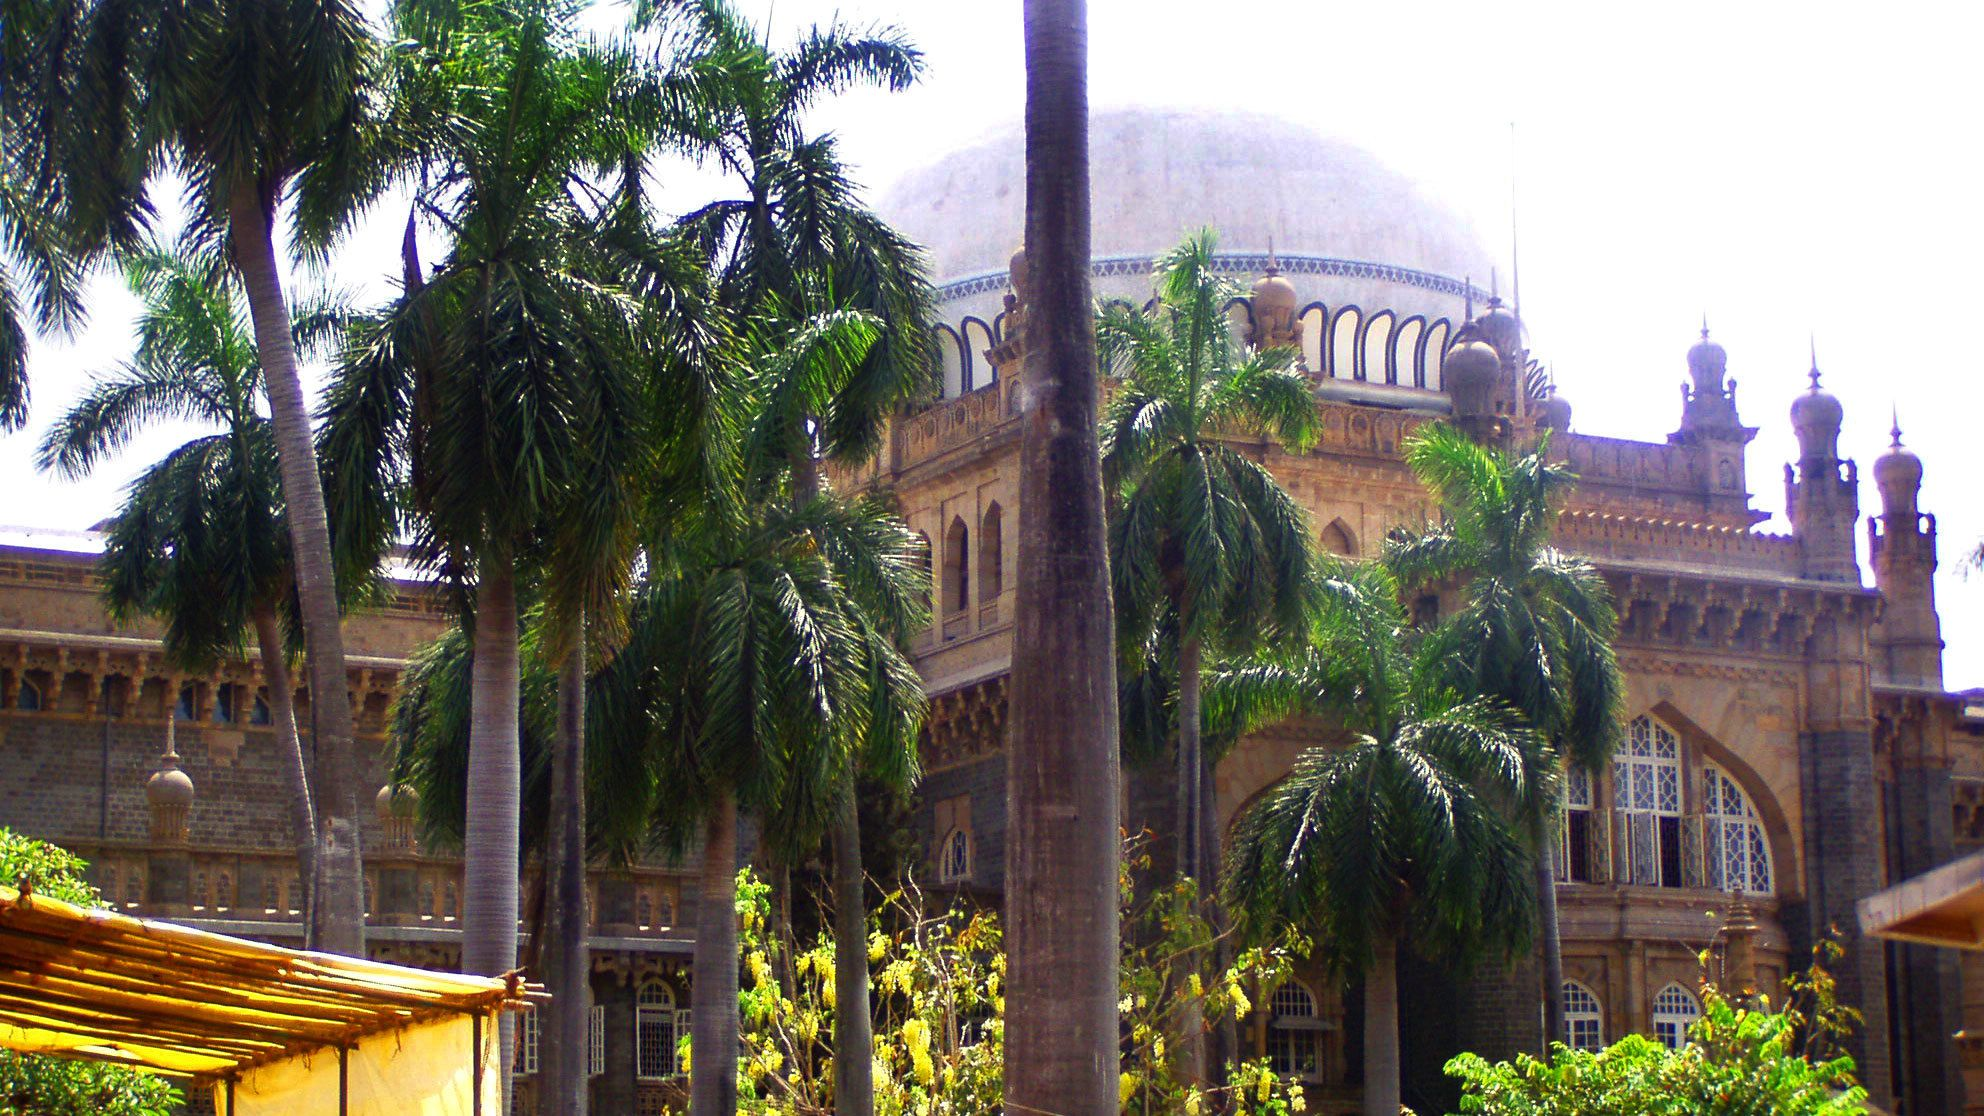 View of large domed temple in Mumbai